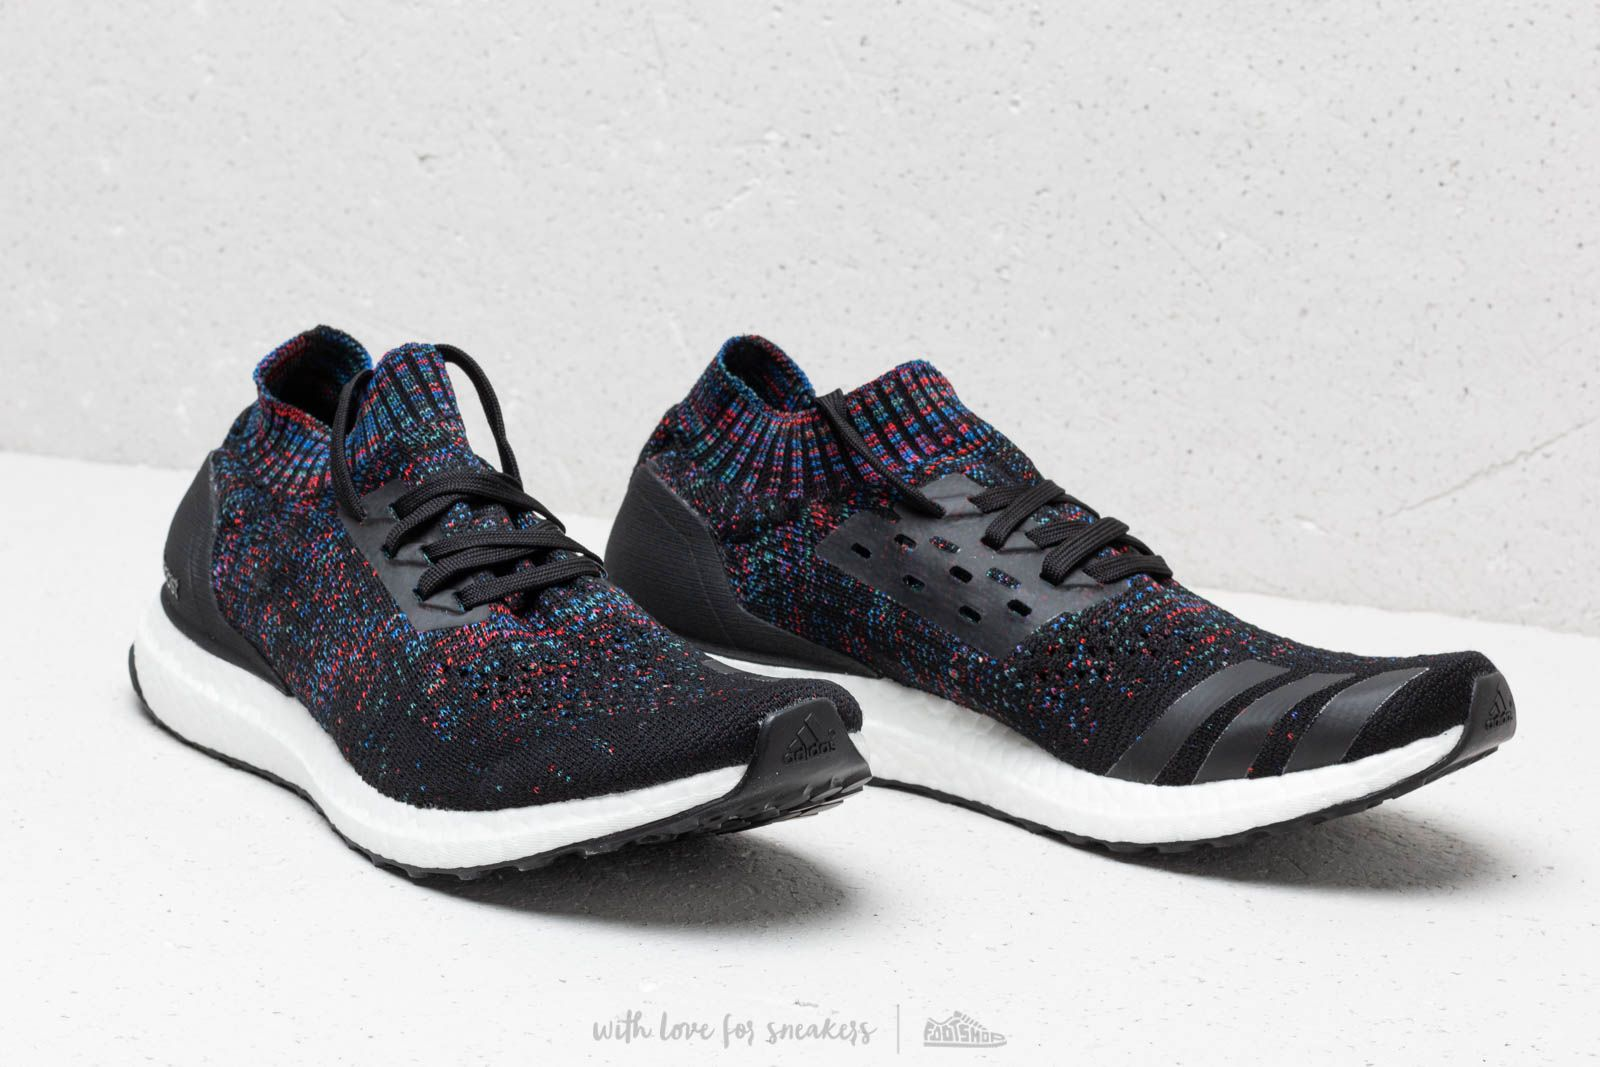 7271b554846 discount red white and blue adidas ca96b 2e92b  australia adidas ultraboost  uncaged core black active red blue at a great price 176 e2621 febaa